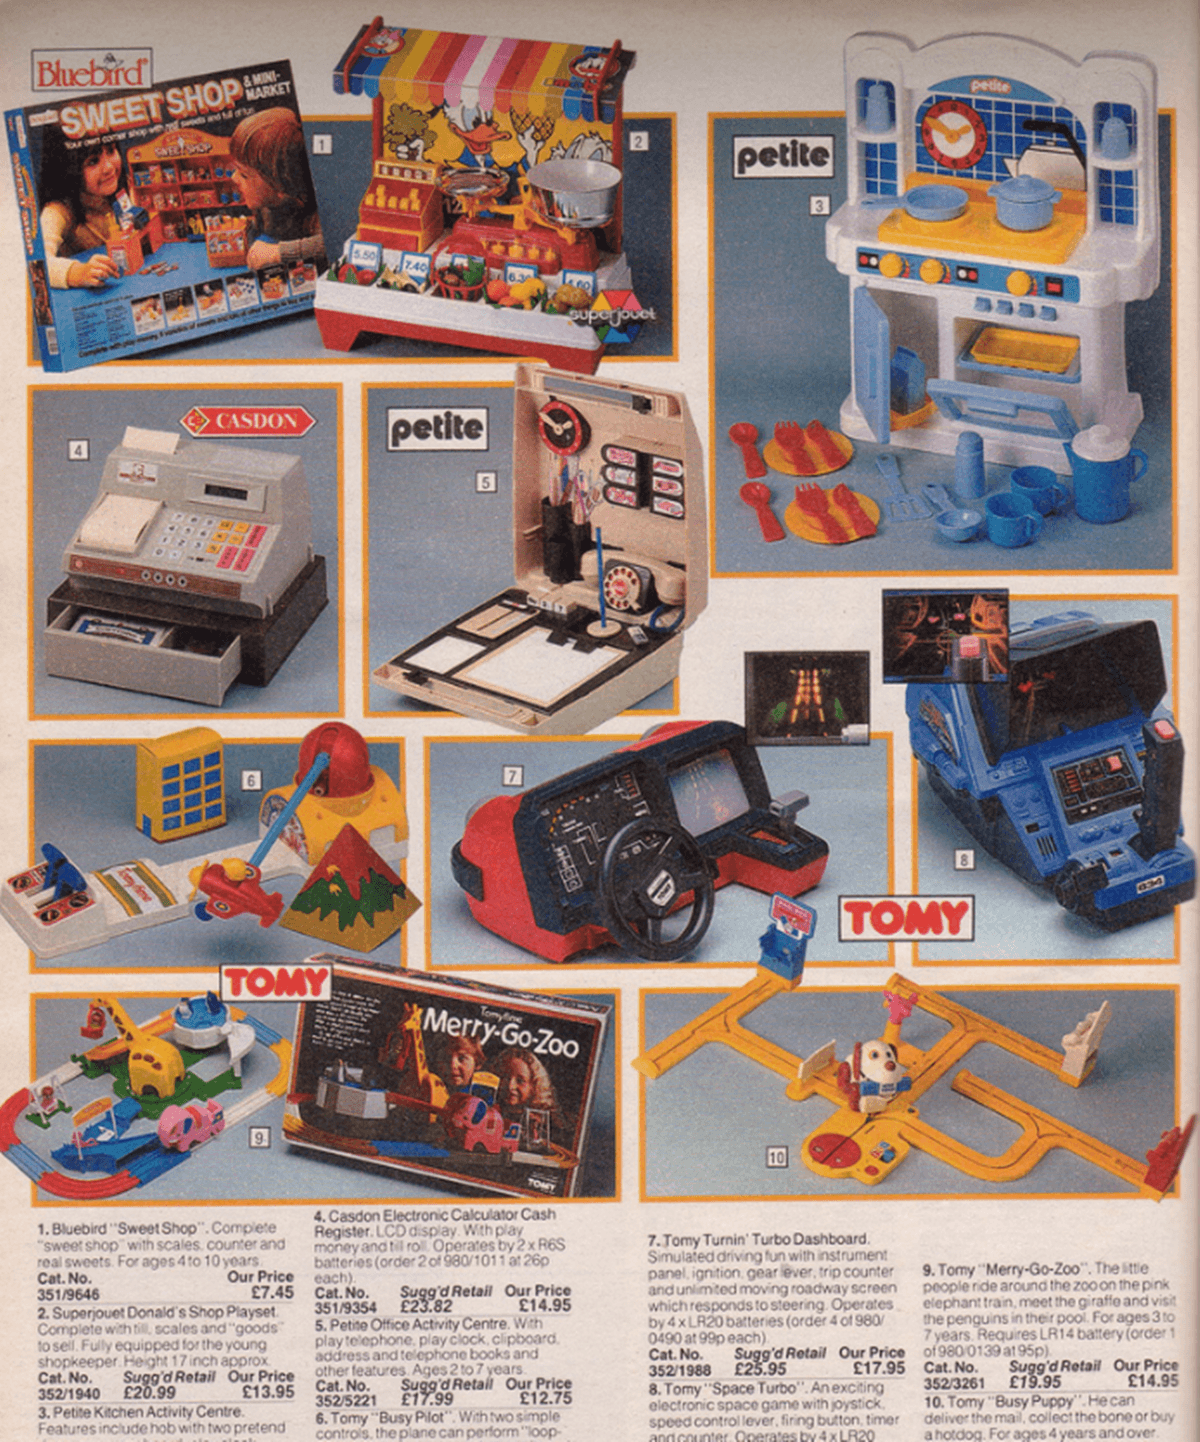 14 Take A Look Inside An Argos Catalogue From 1986!